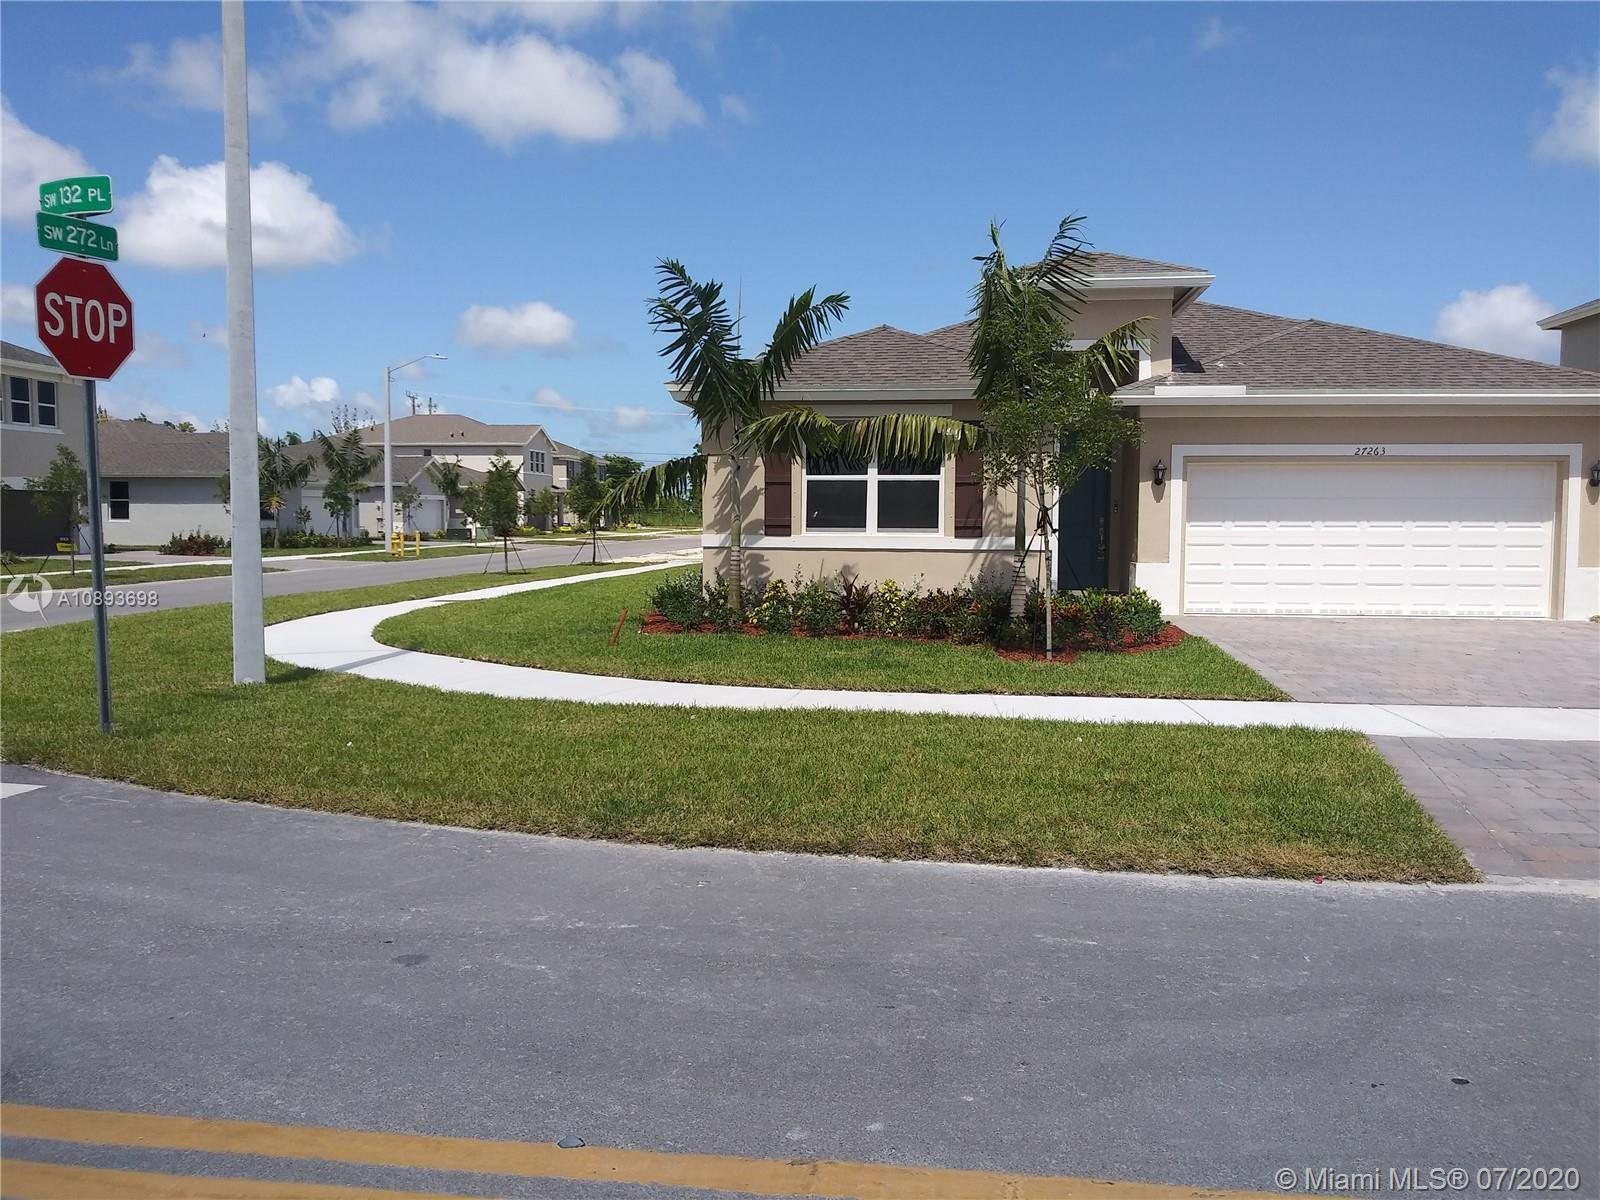 27263 SW 132nd Pl #27263 Property Photo - Homestead, FL real estate listing